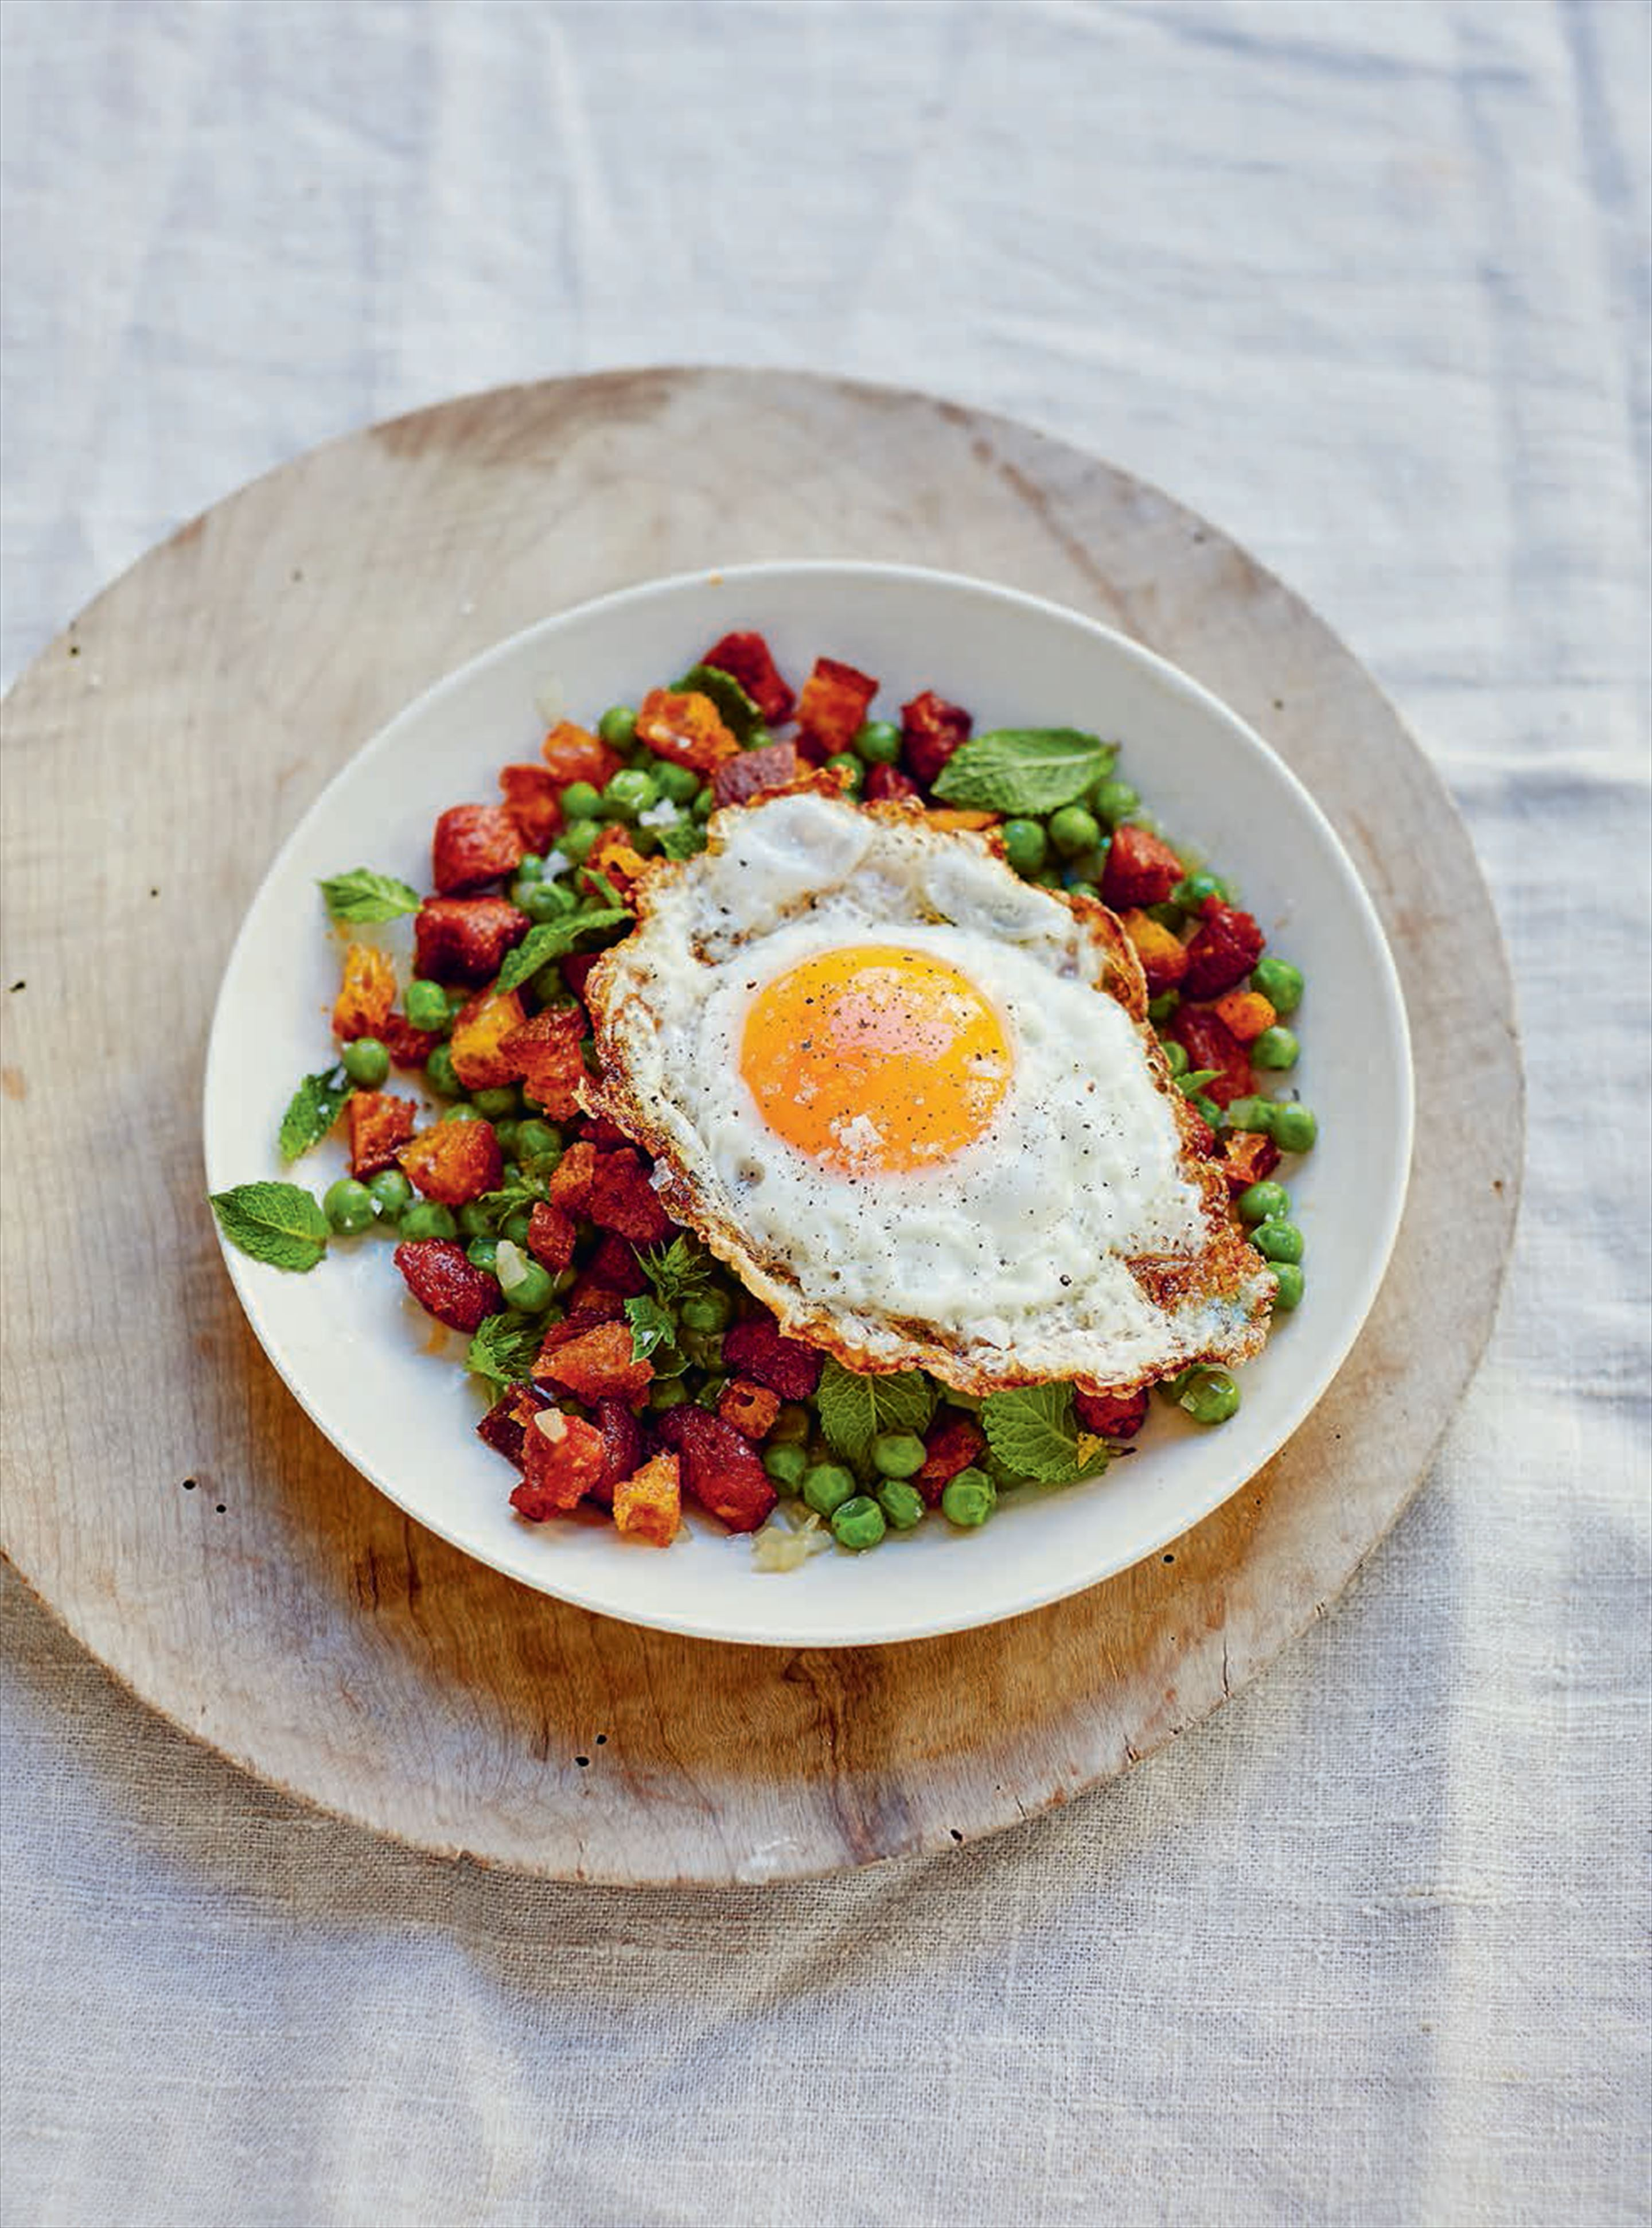 Sautéed peas with chorizo migas & golden fried egg